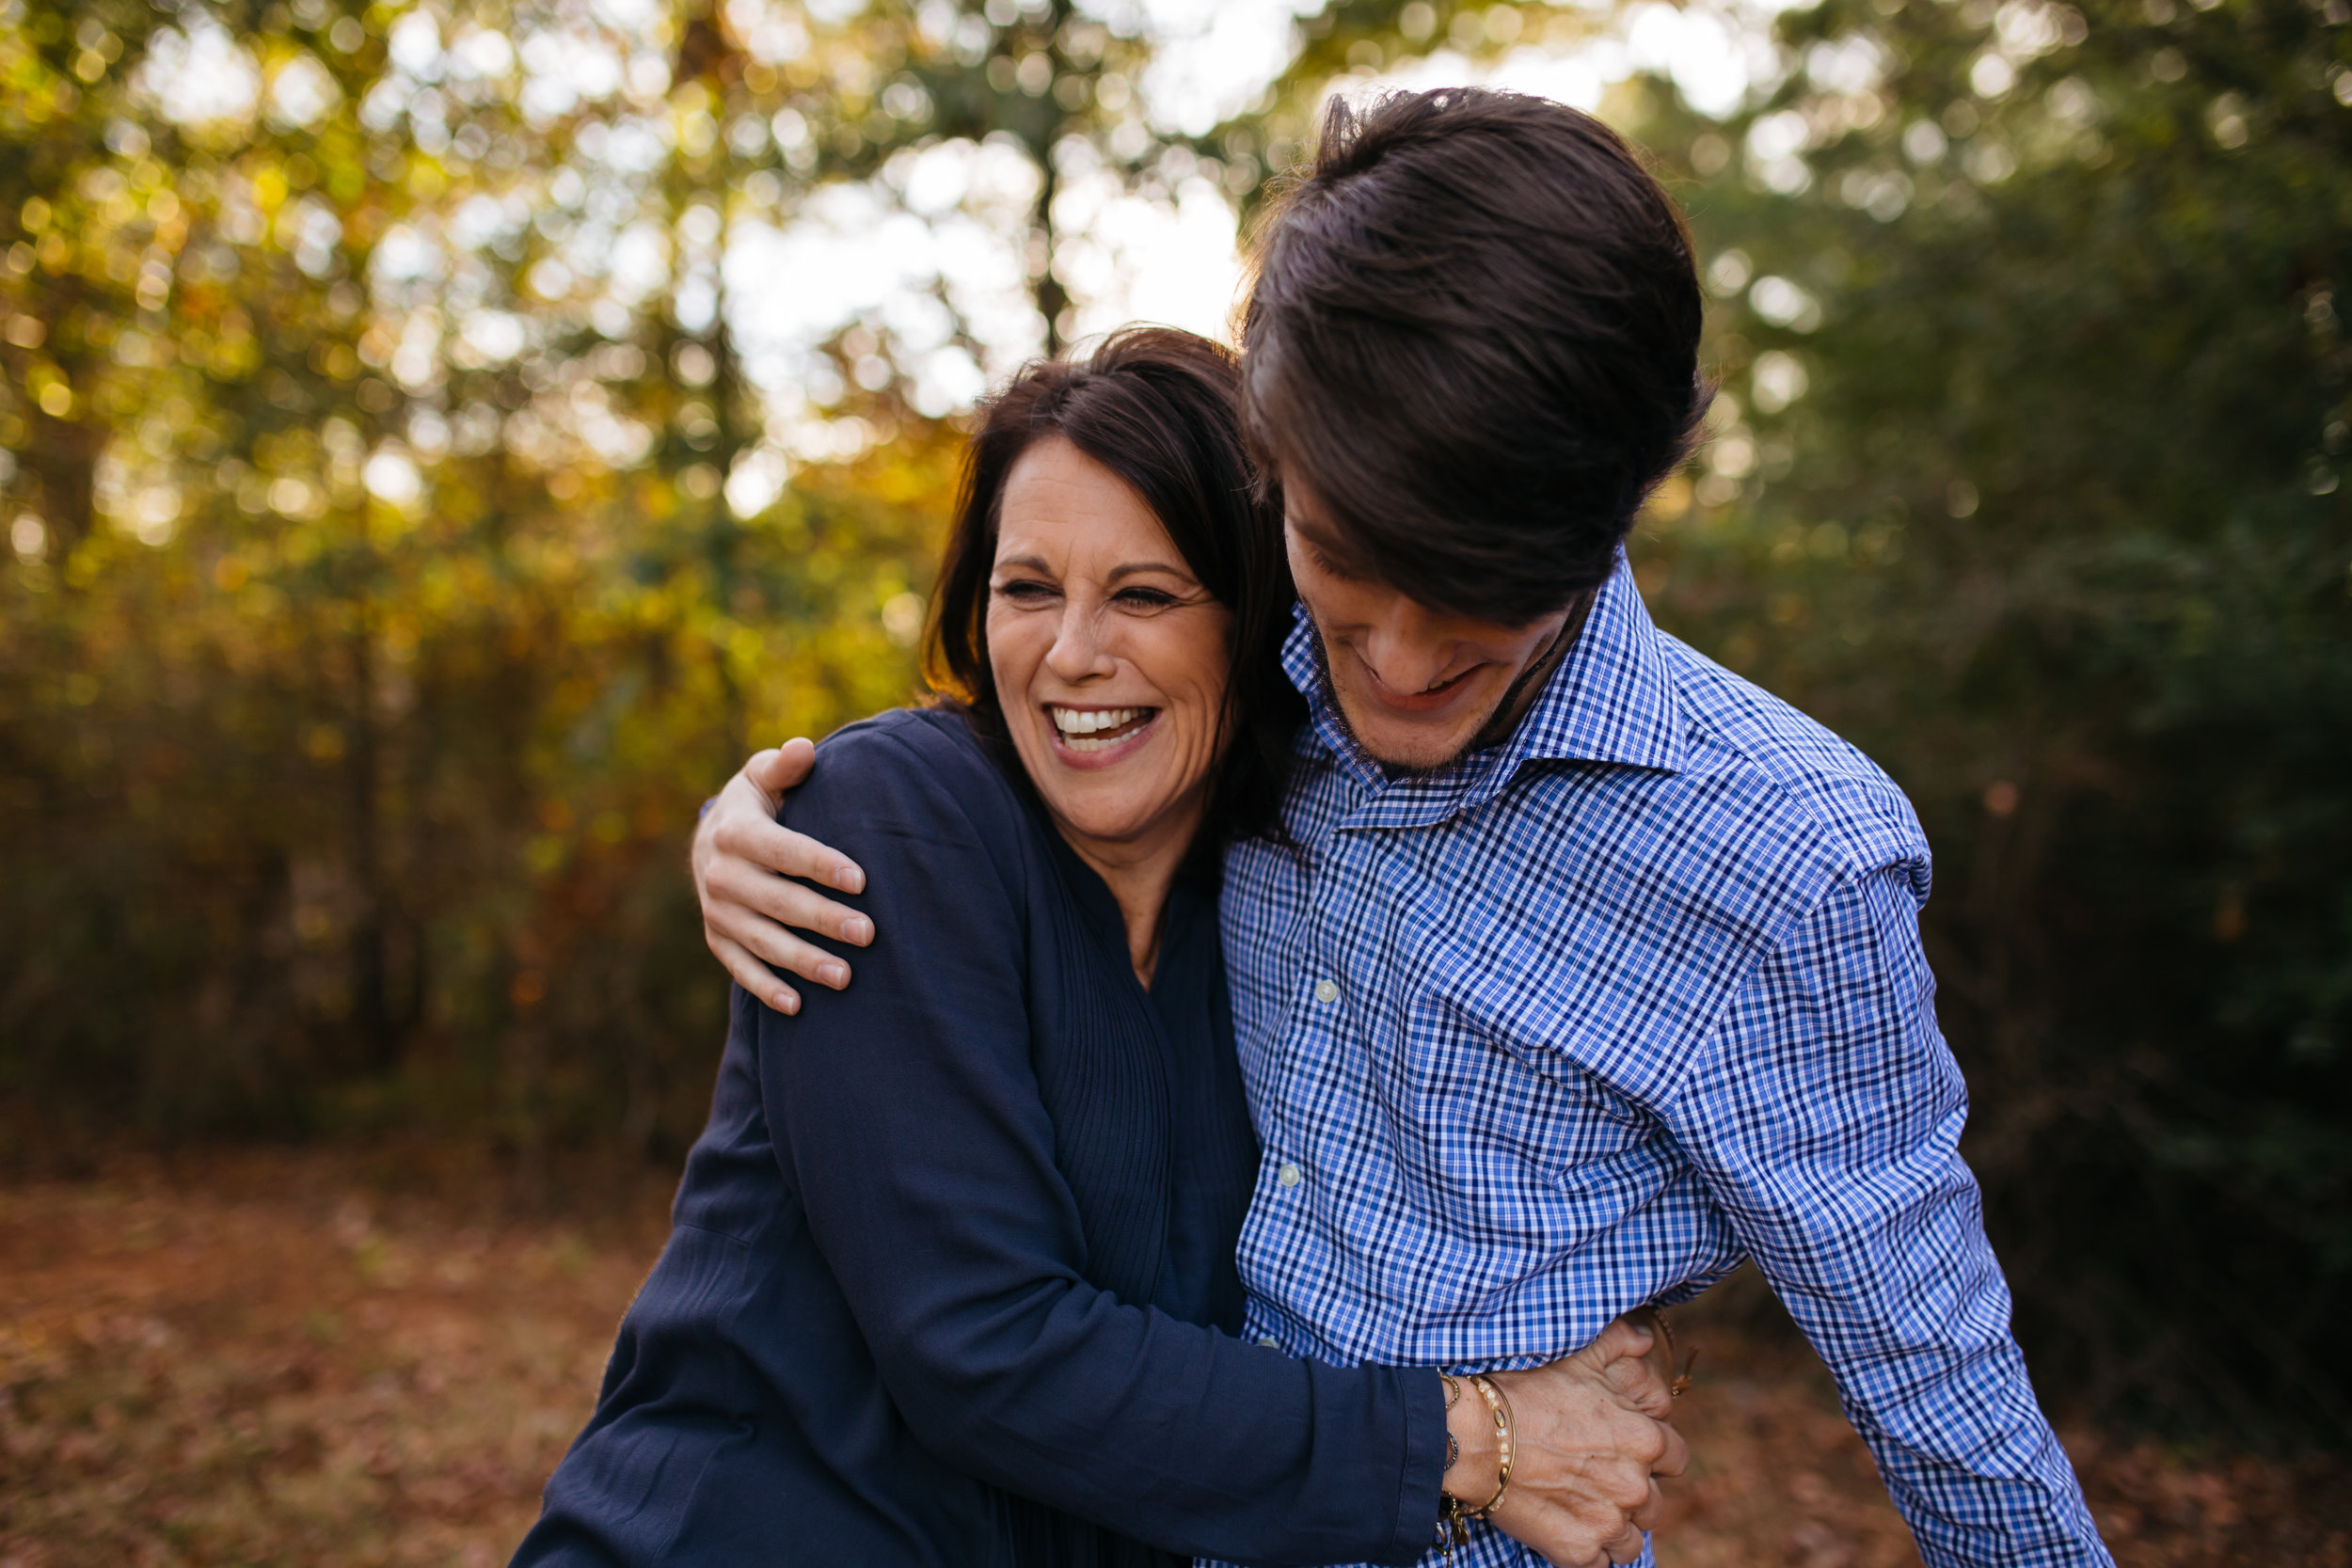 fall-family-photo-session-madison-huntsville-alabama-mary-colleen-photography013